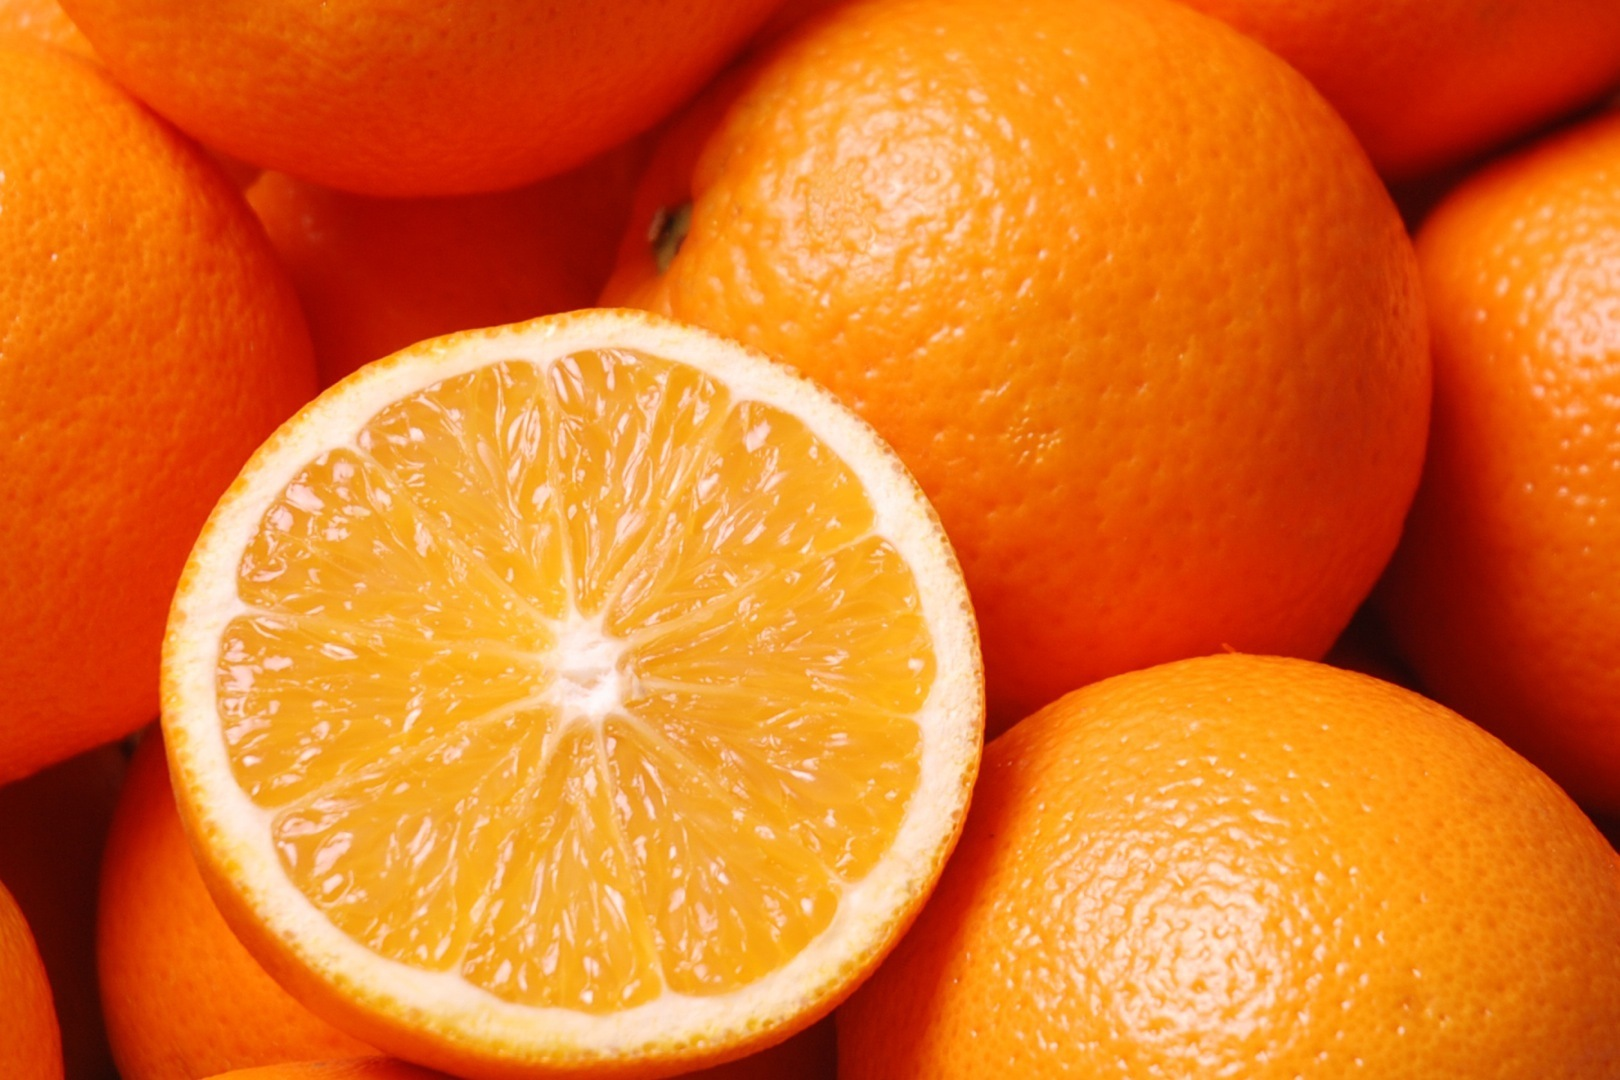 http://www.healthyfoodhouse.com/wp-content/uploads/2013/03/orange-king-of-fruits.jpg